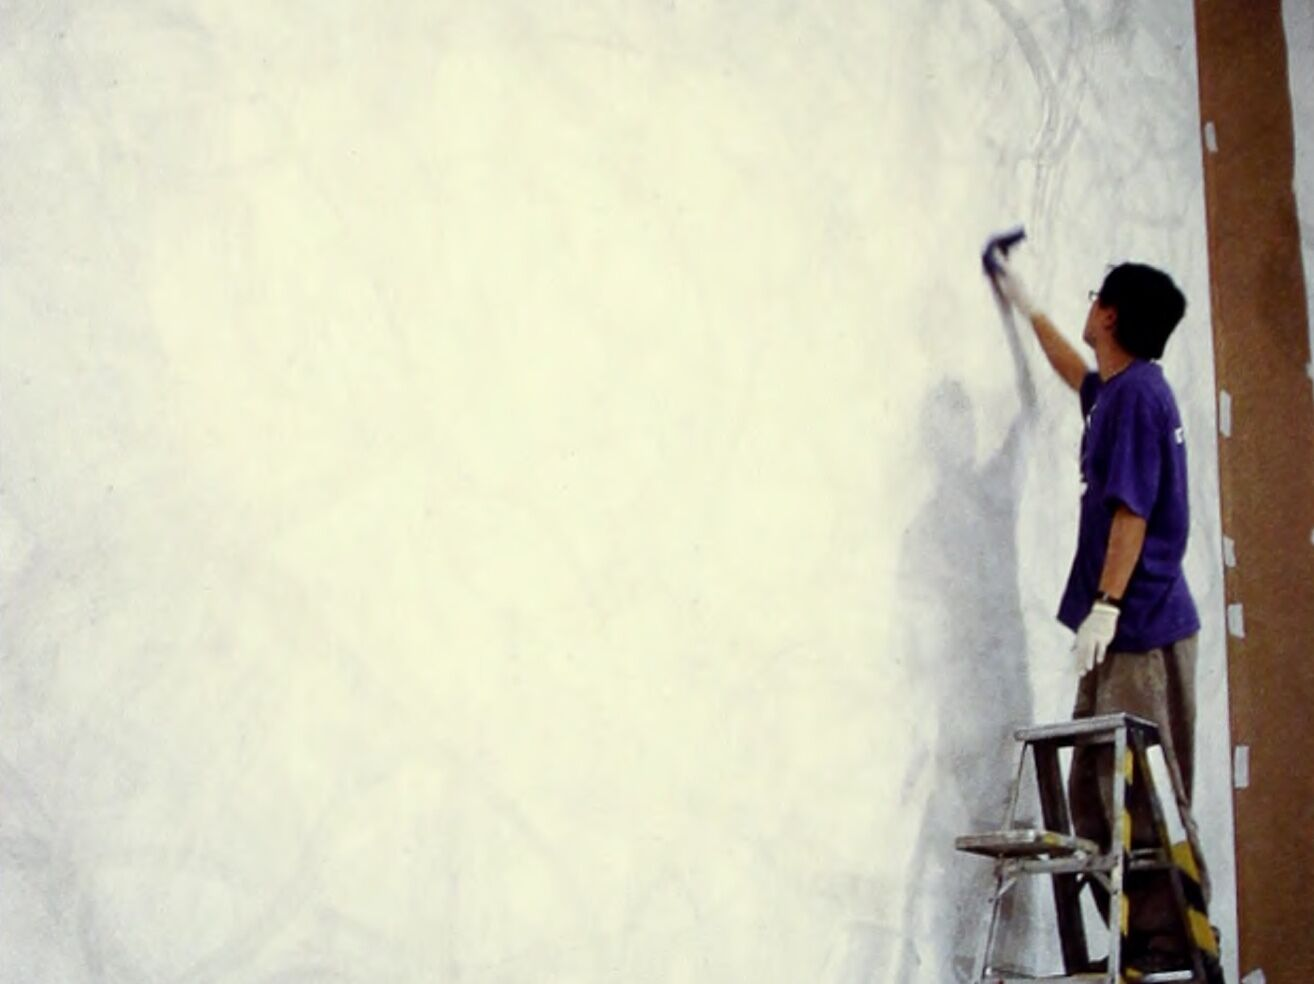 A person on a ladder painting on a large wall.